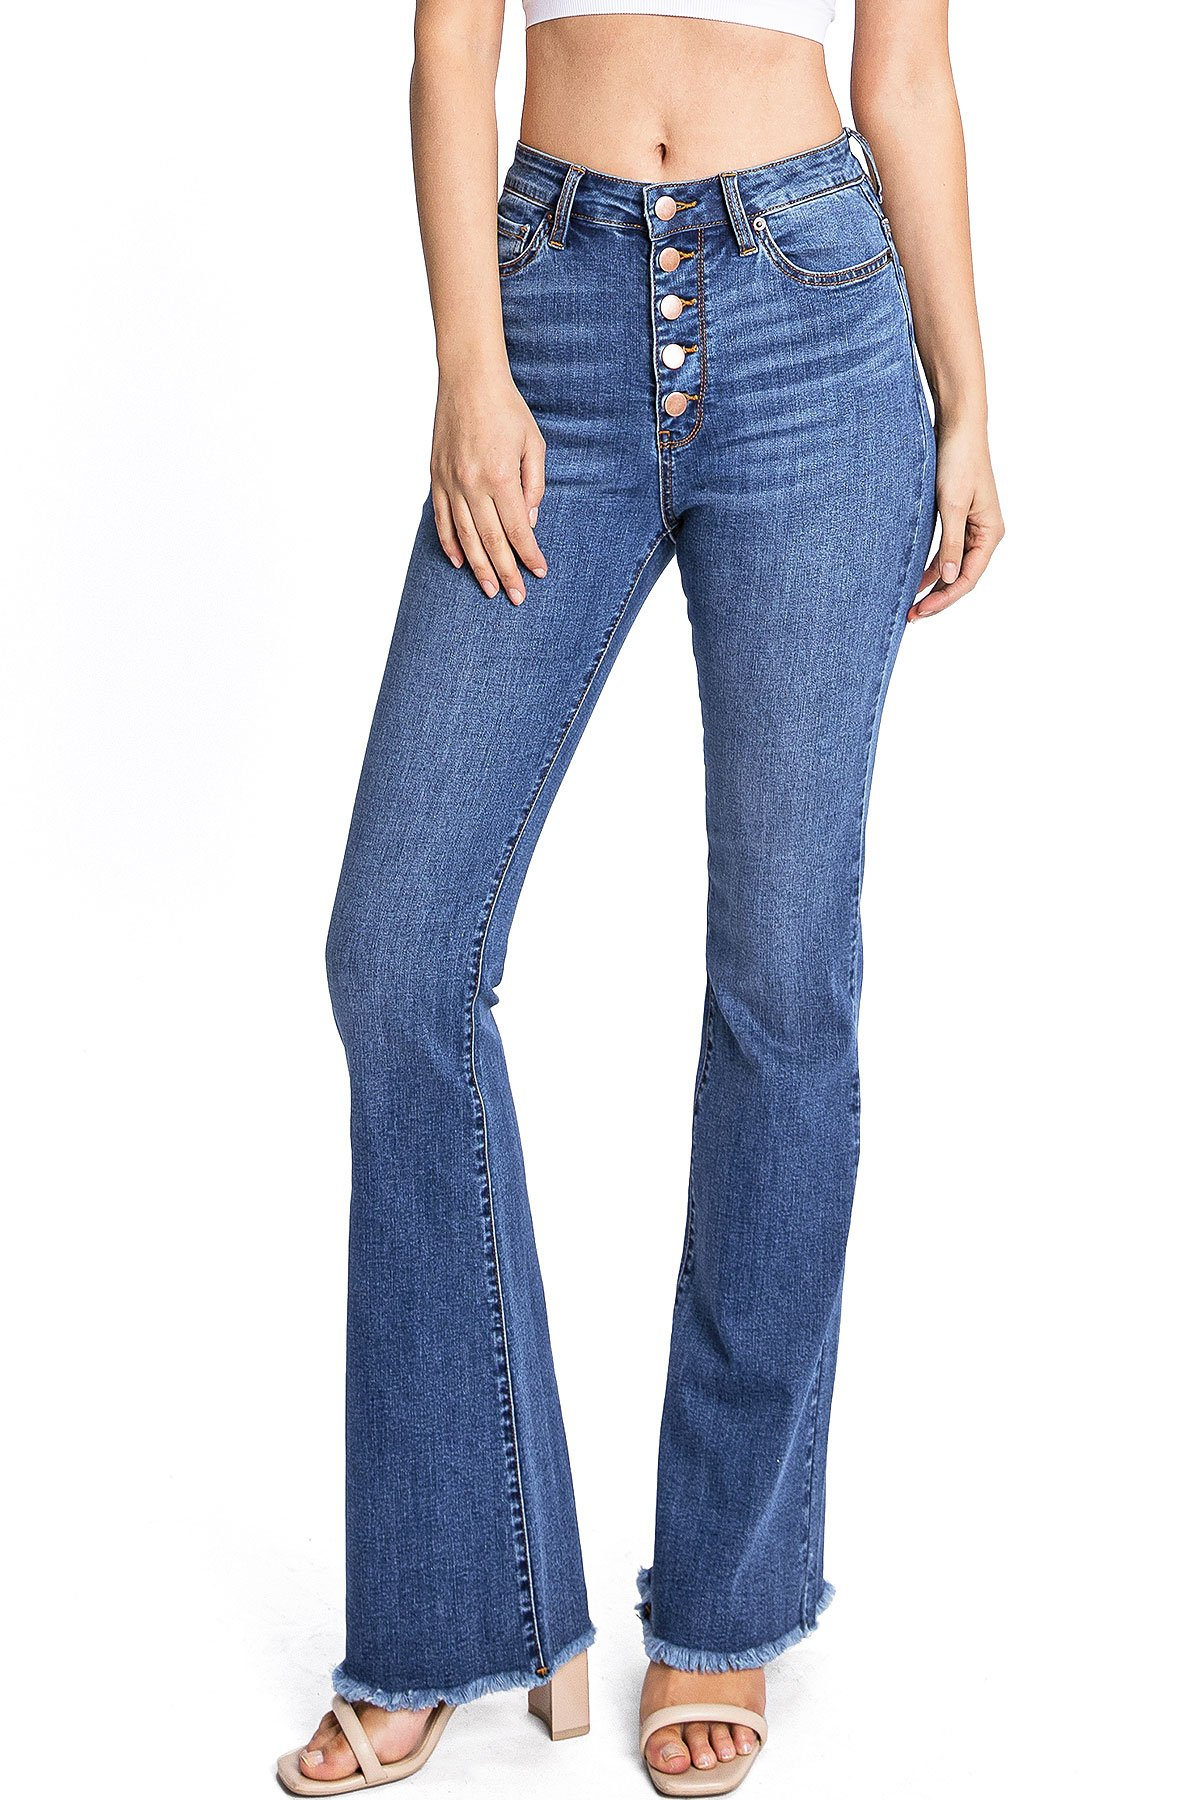 Image of Parker Button Up Flares